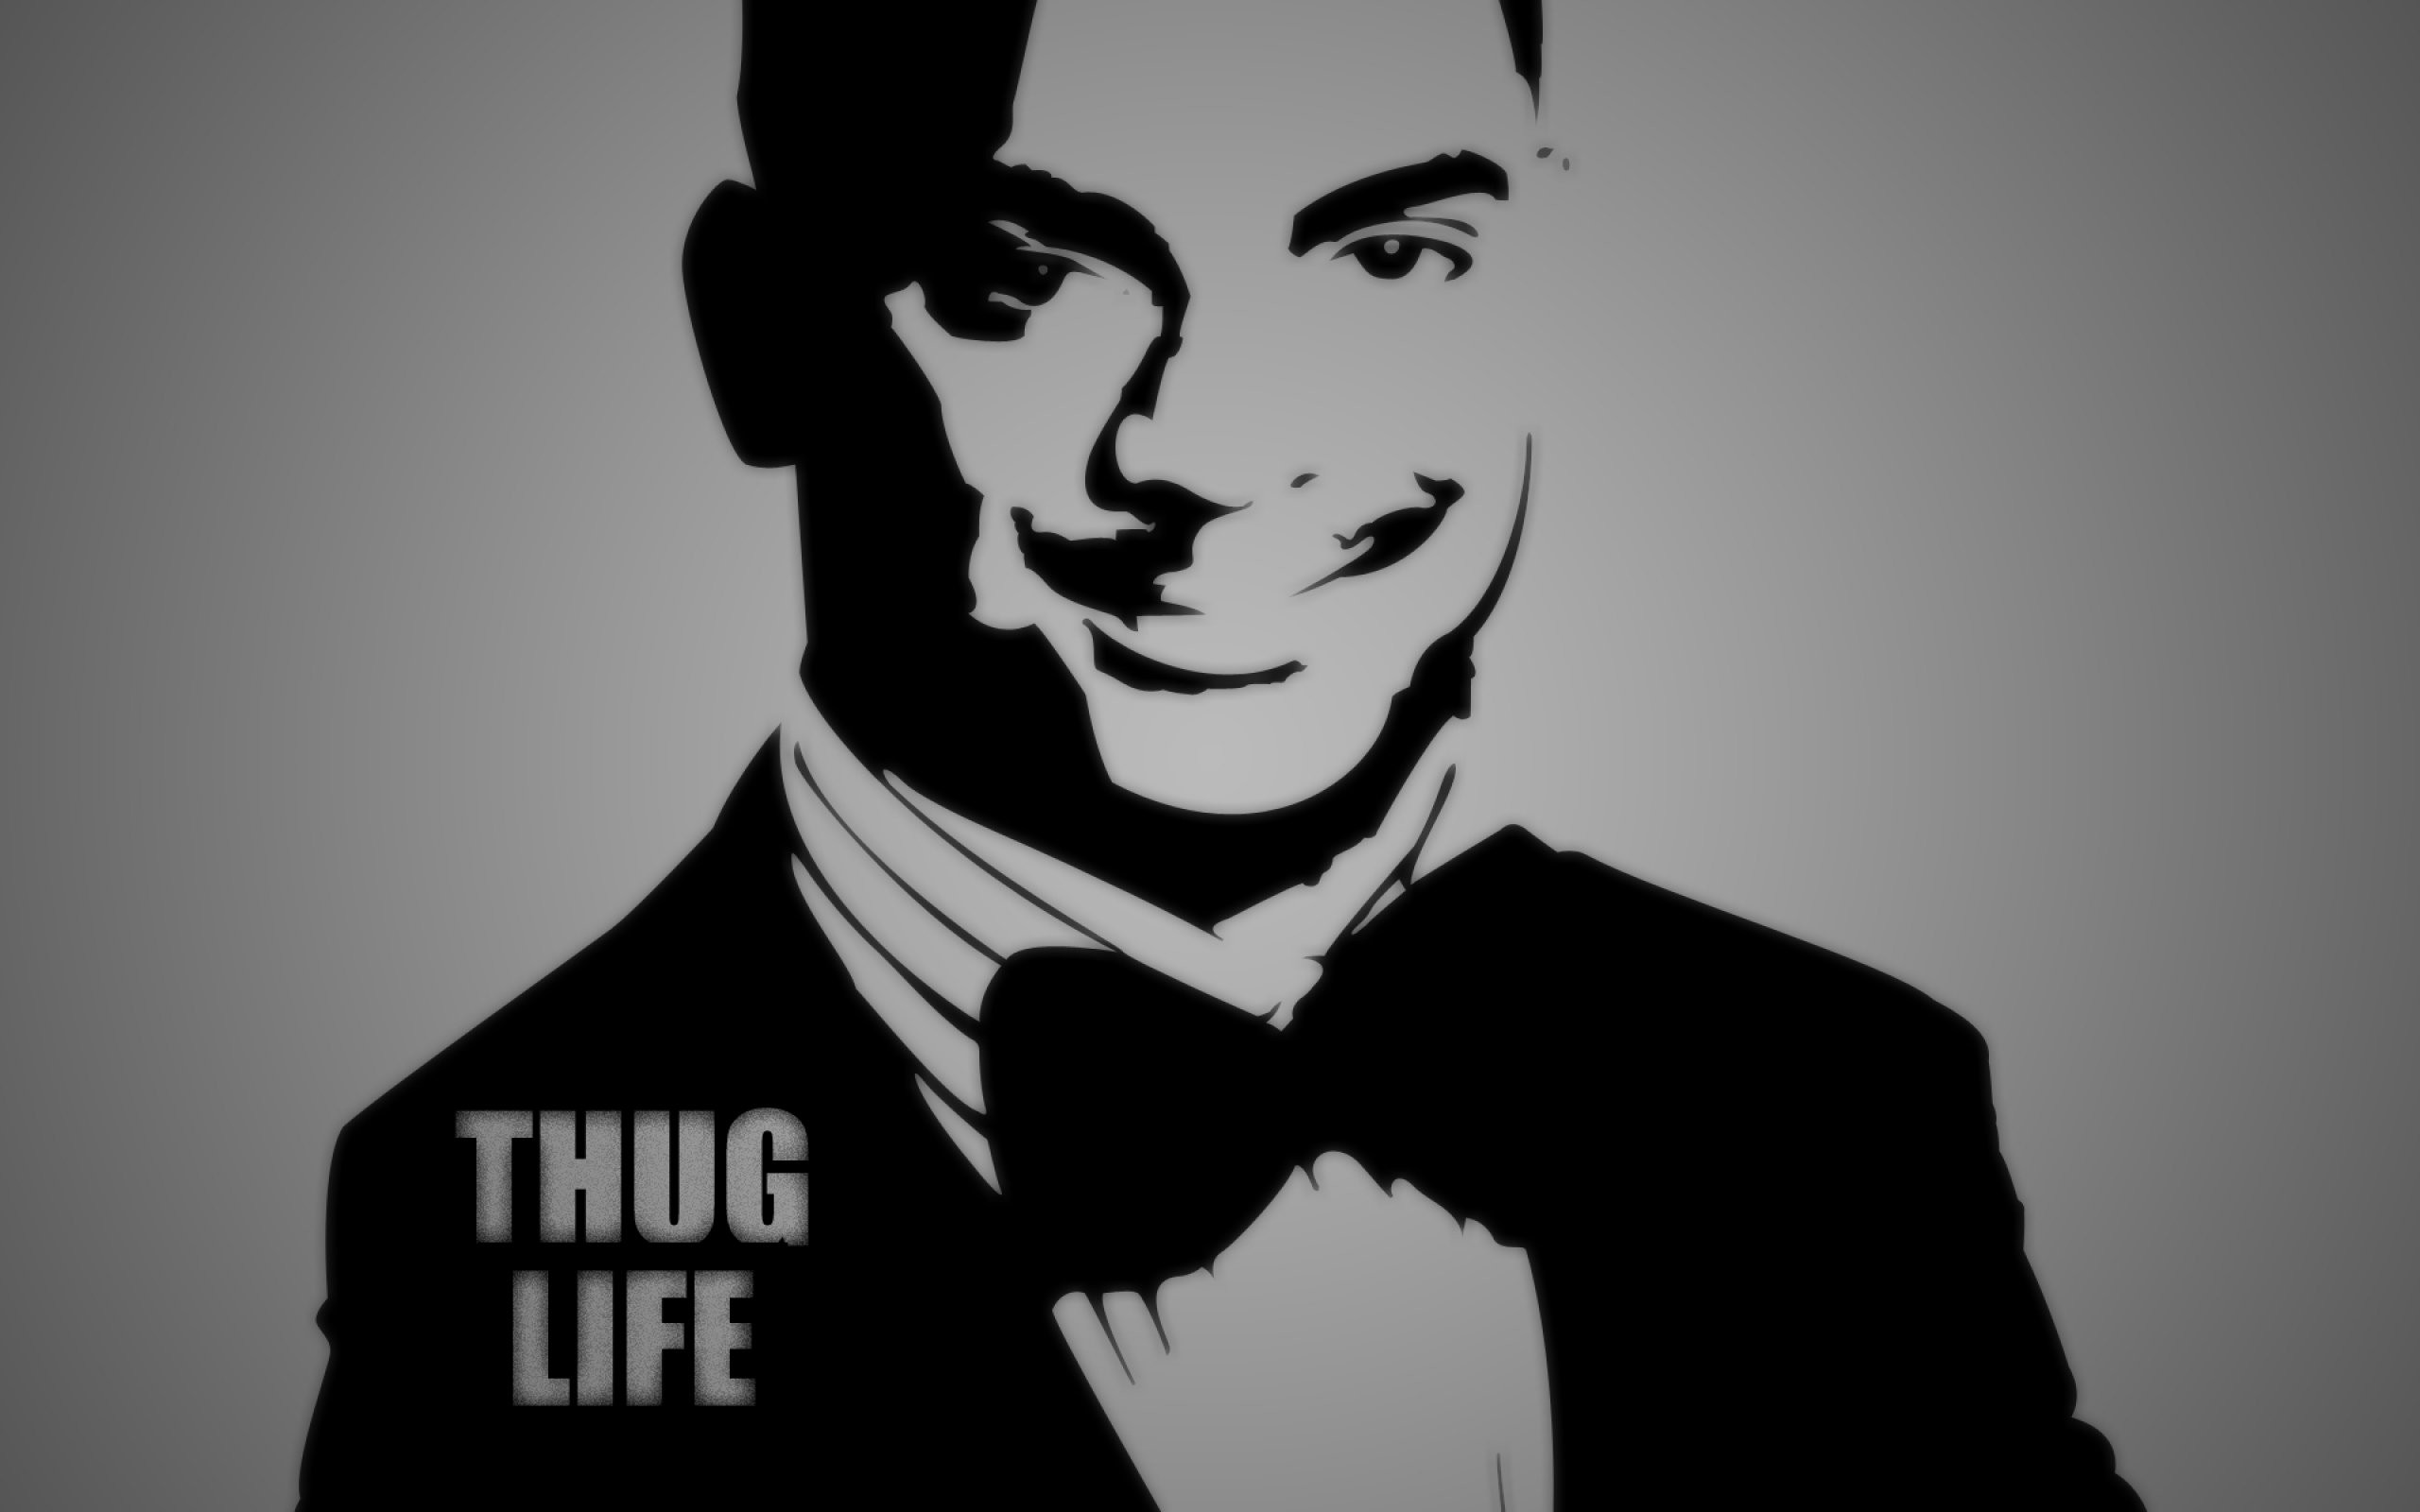 … fresh prince of bel air comedy sitcom series television will smith …